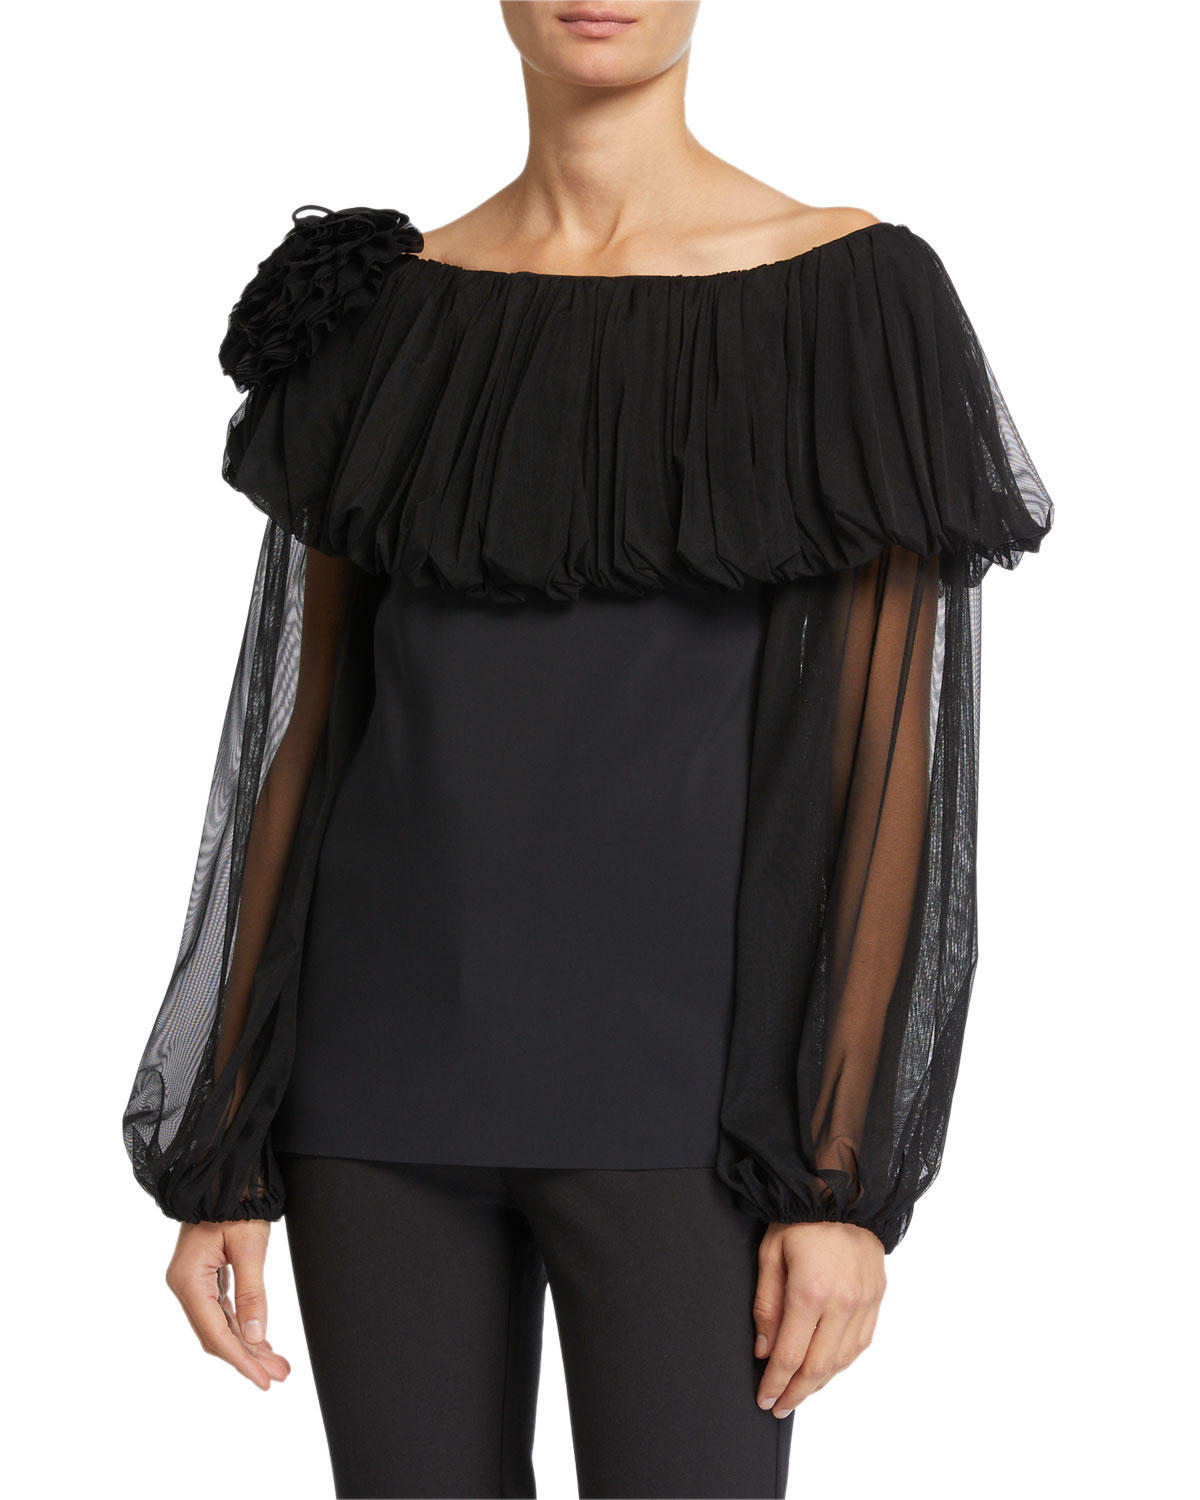 Chiara Boni La Petite Robe Tops LEANDRA OFF-THE-SHOULDER POPOVER ILLUSION BLOUSE